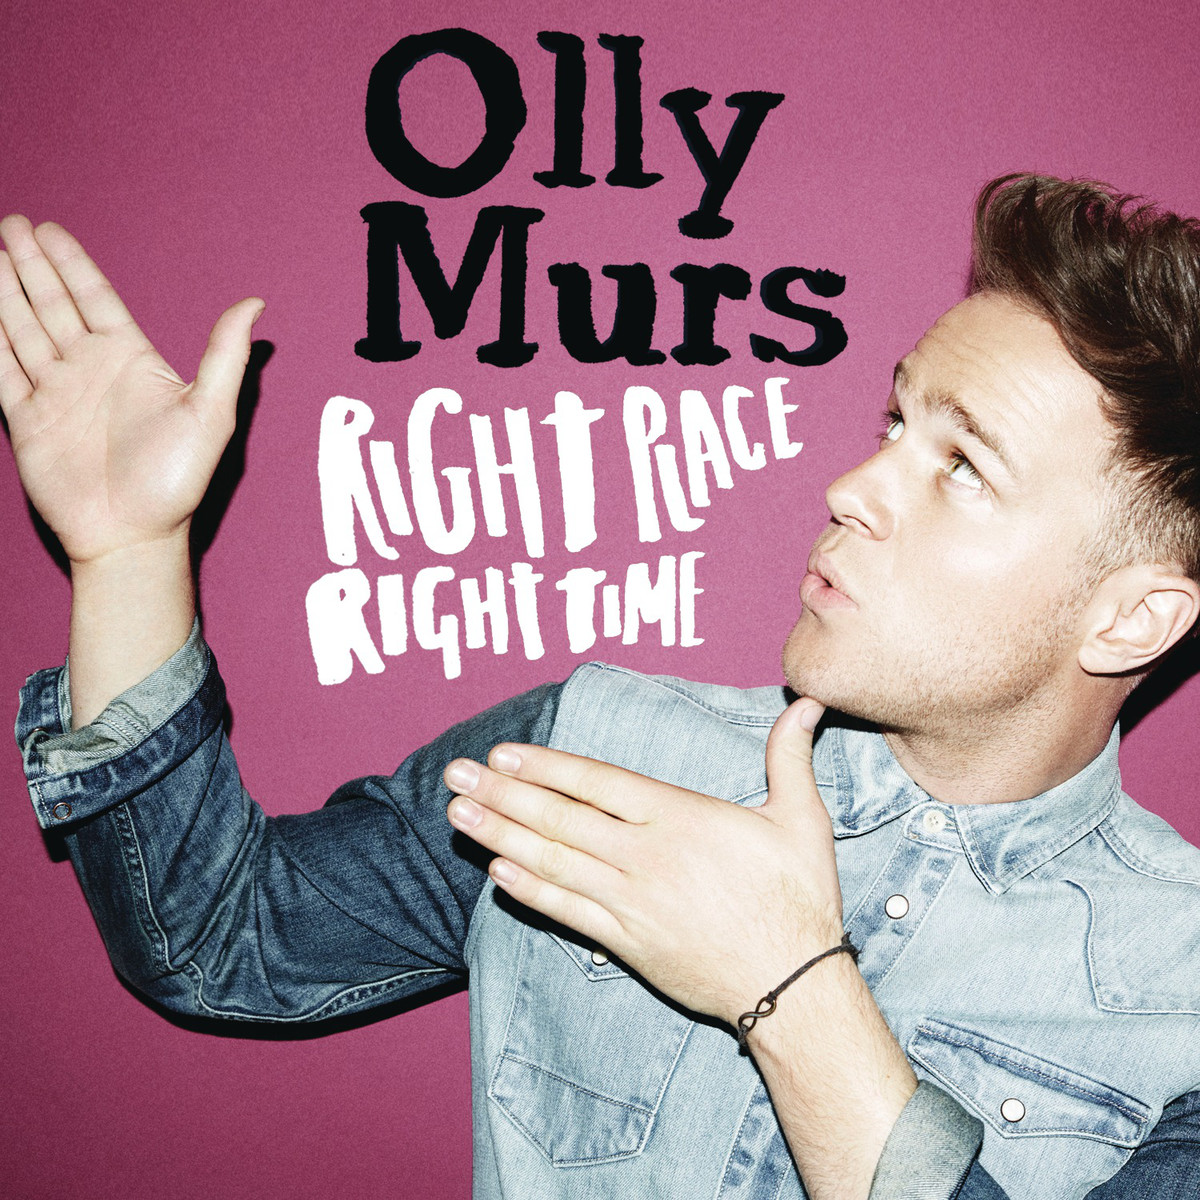 Olly-Murs-Right-Place-Right-Time-Single-2013-1200x1200